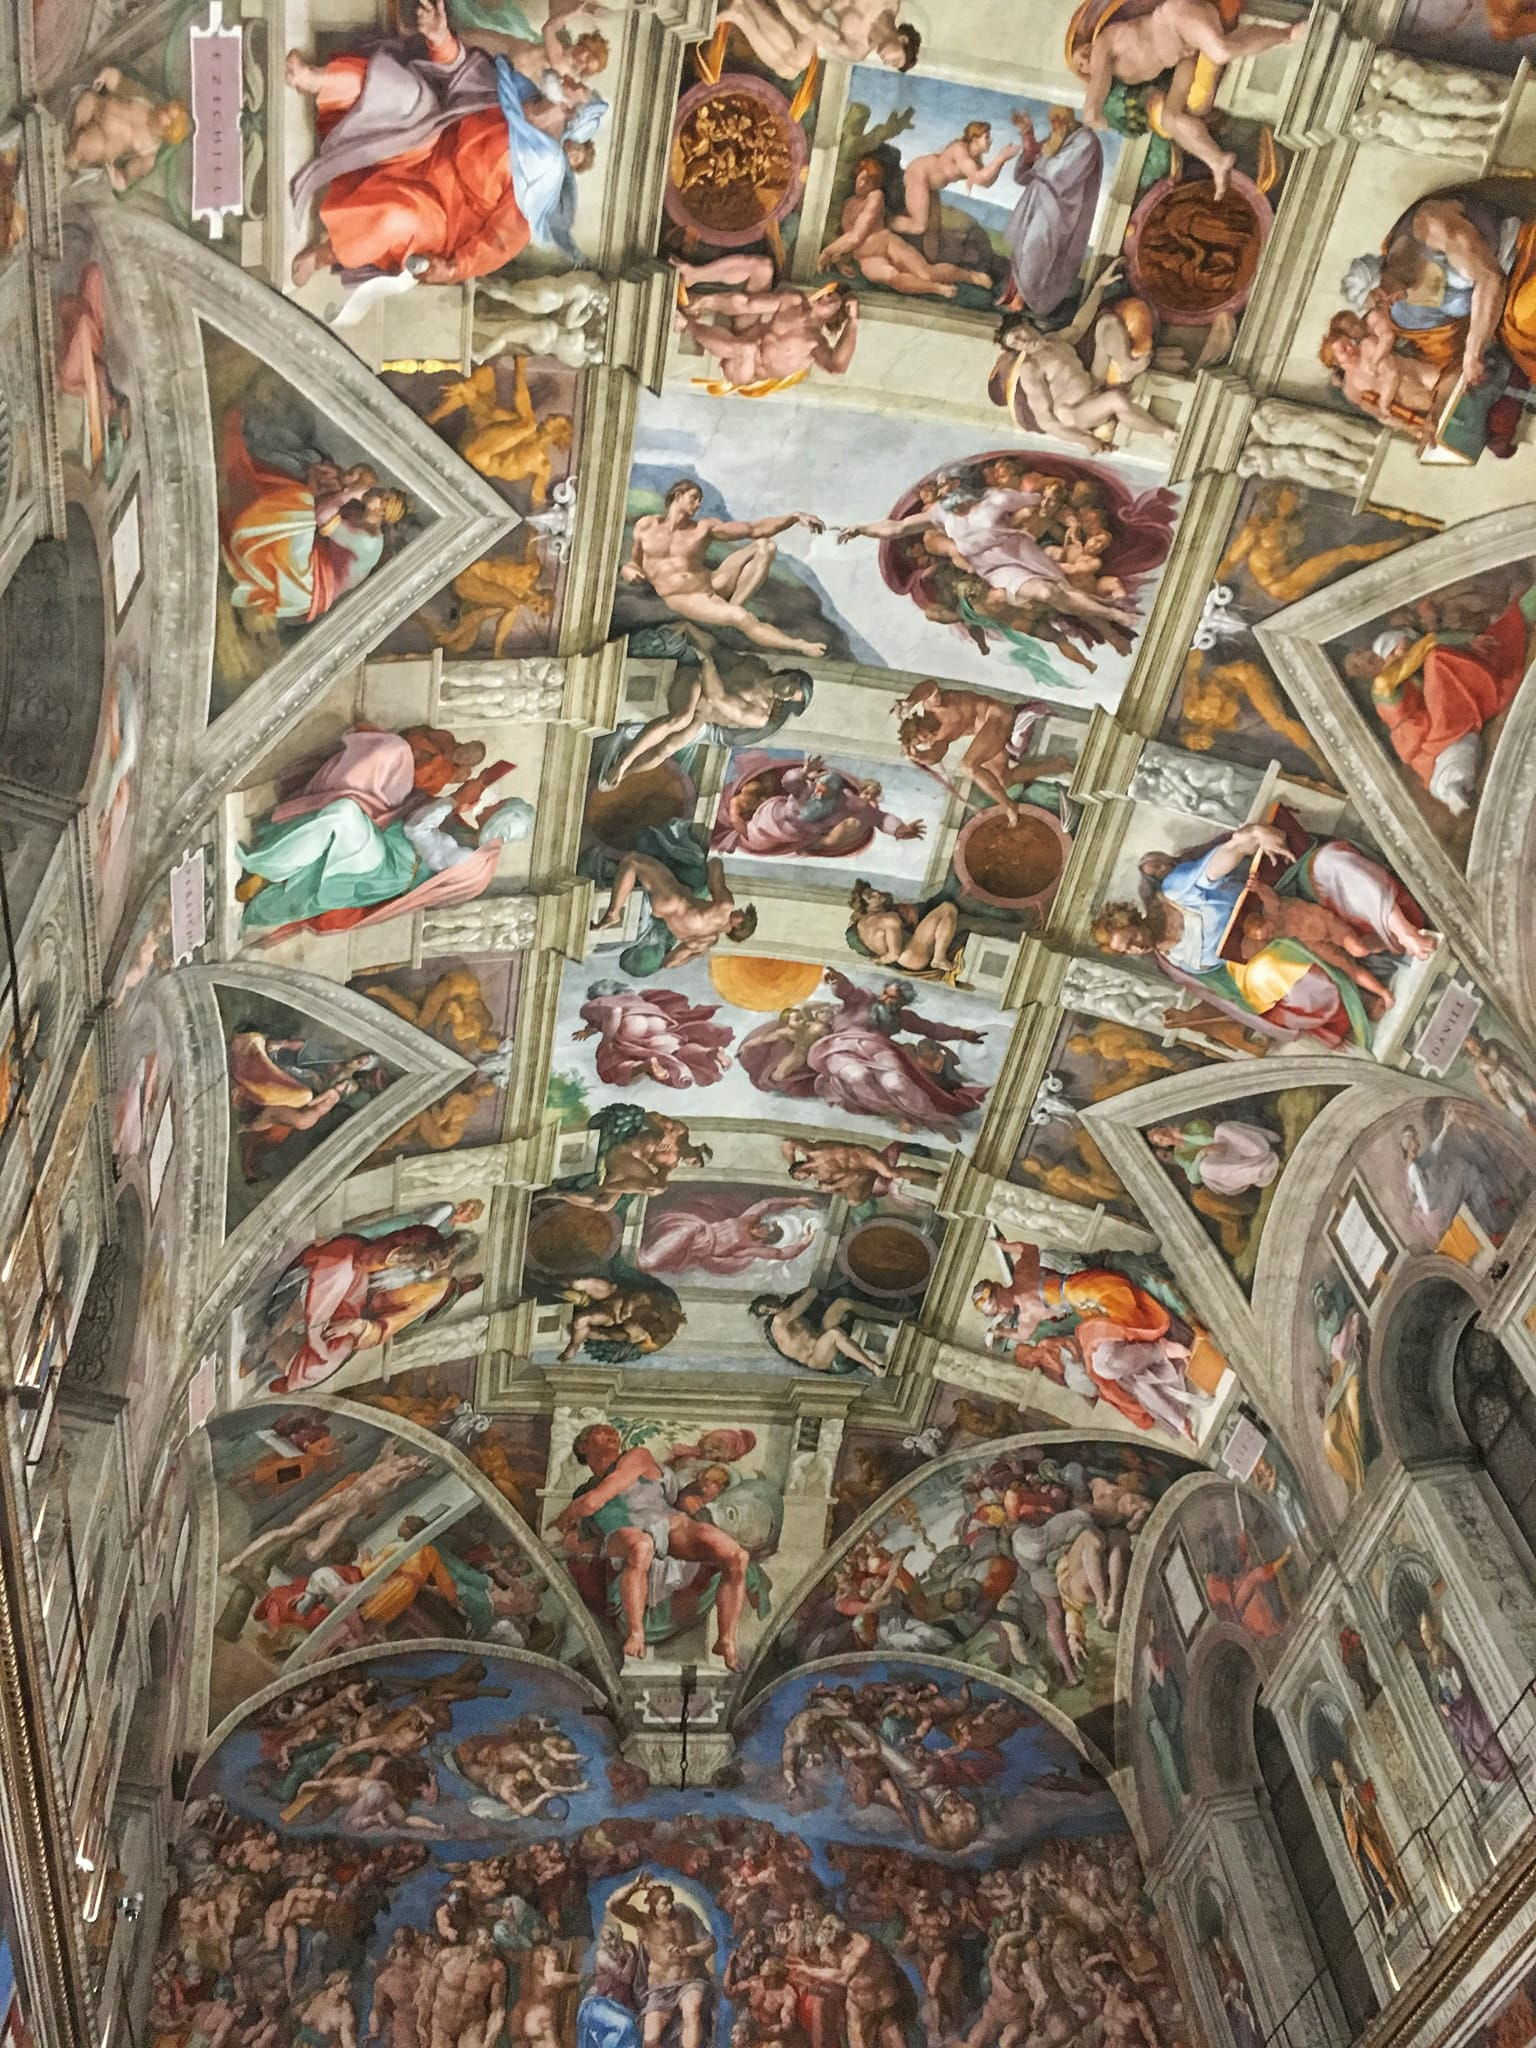 Visit Rome In 4 Days - Sistine Chapel